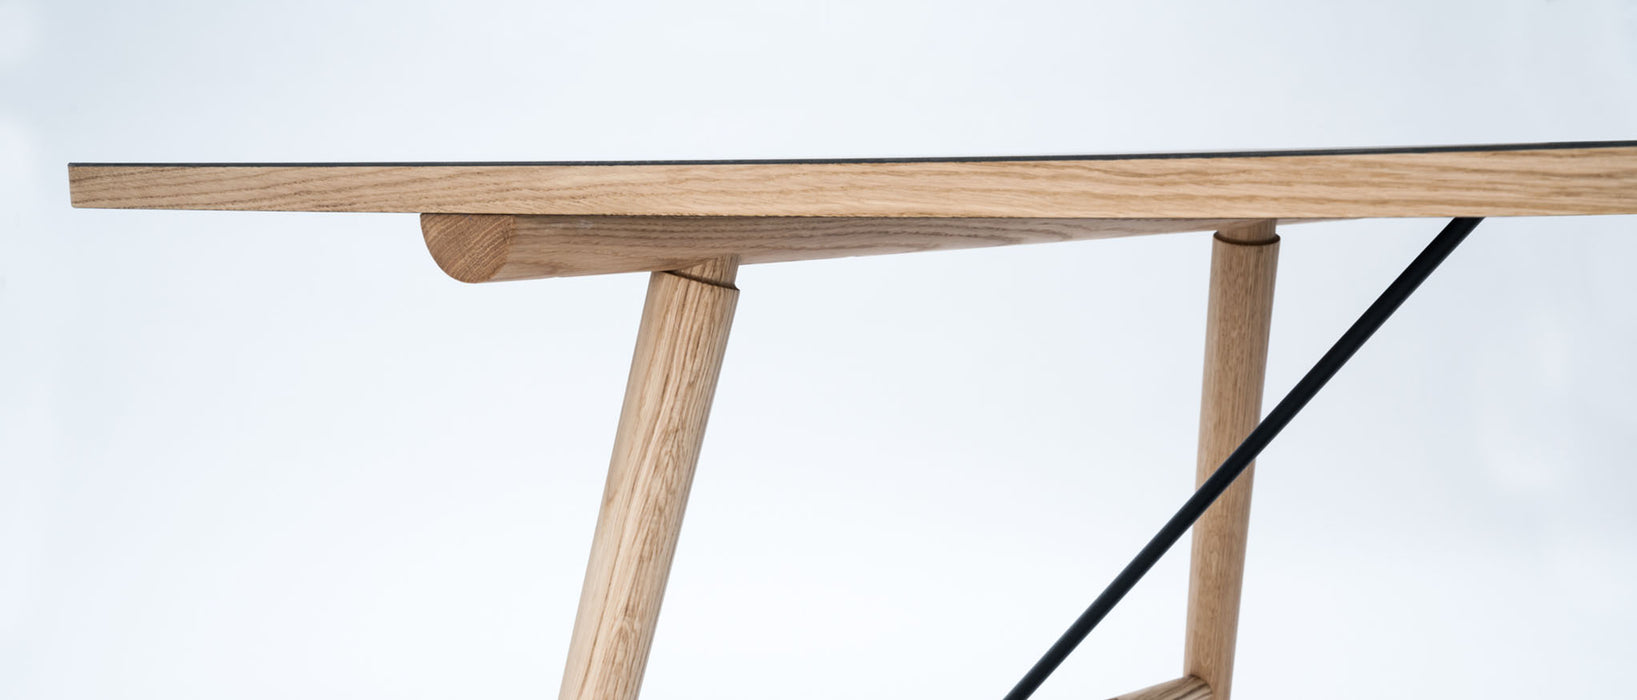 HEKLA Dining Table 208x95cm // Black Linoleum Top - Solid Oiled Oak Legs